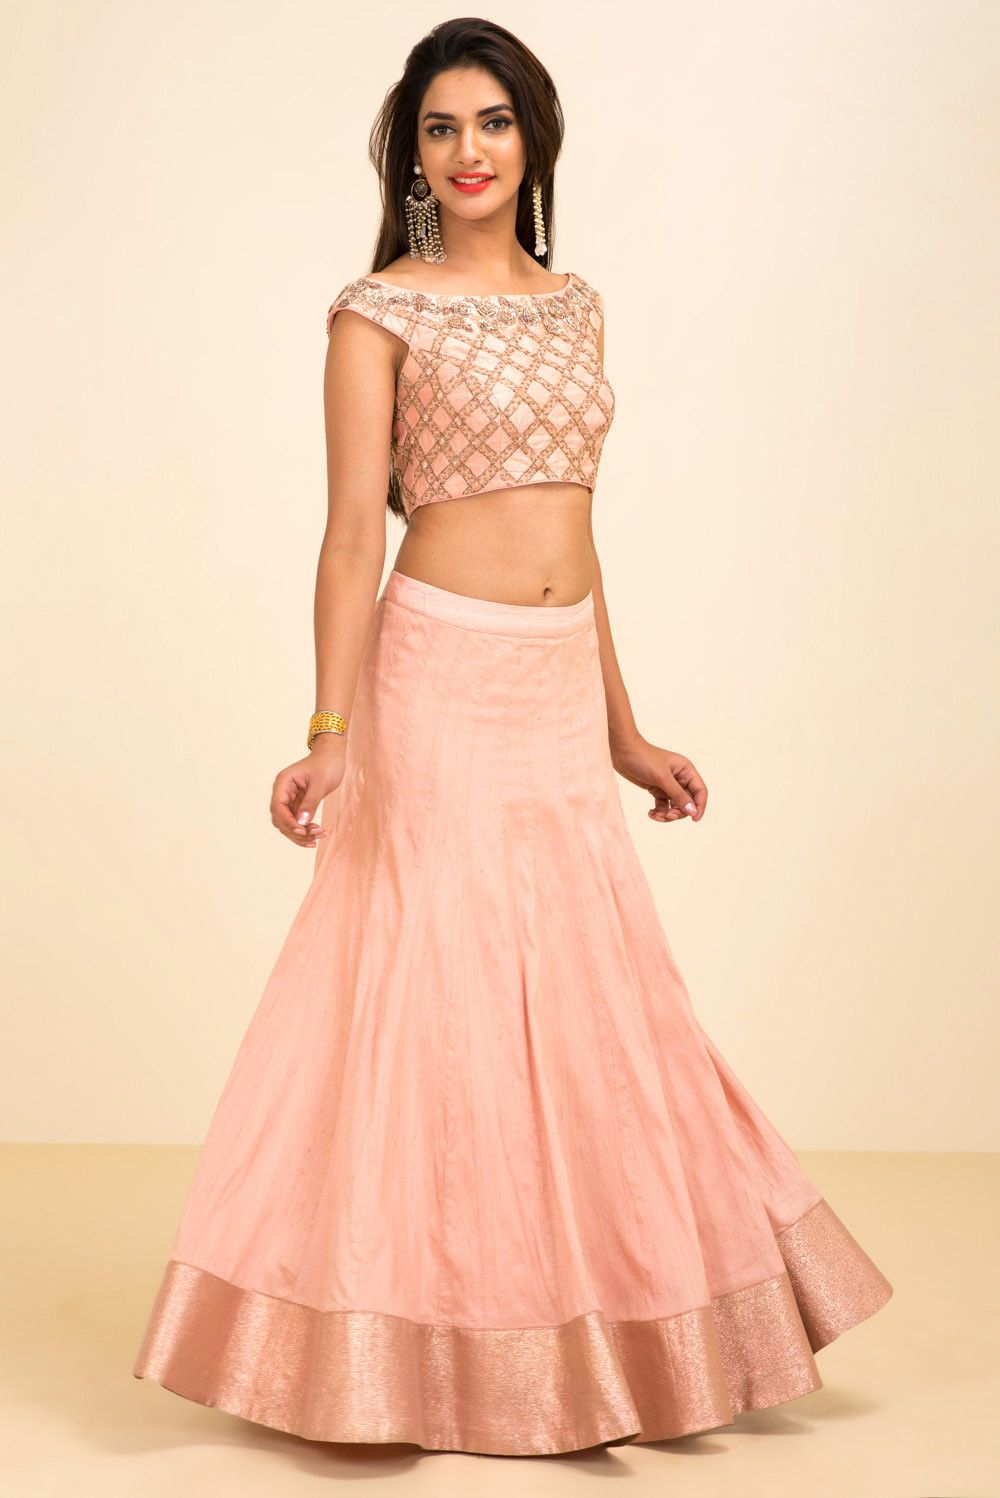 f7c42163c50c1 NISHA SHAINANI pink and gold floral embroidered croptop with skirt style  lehenga